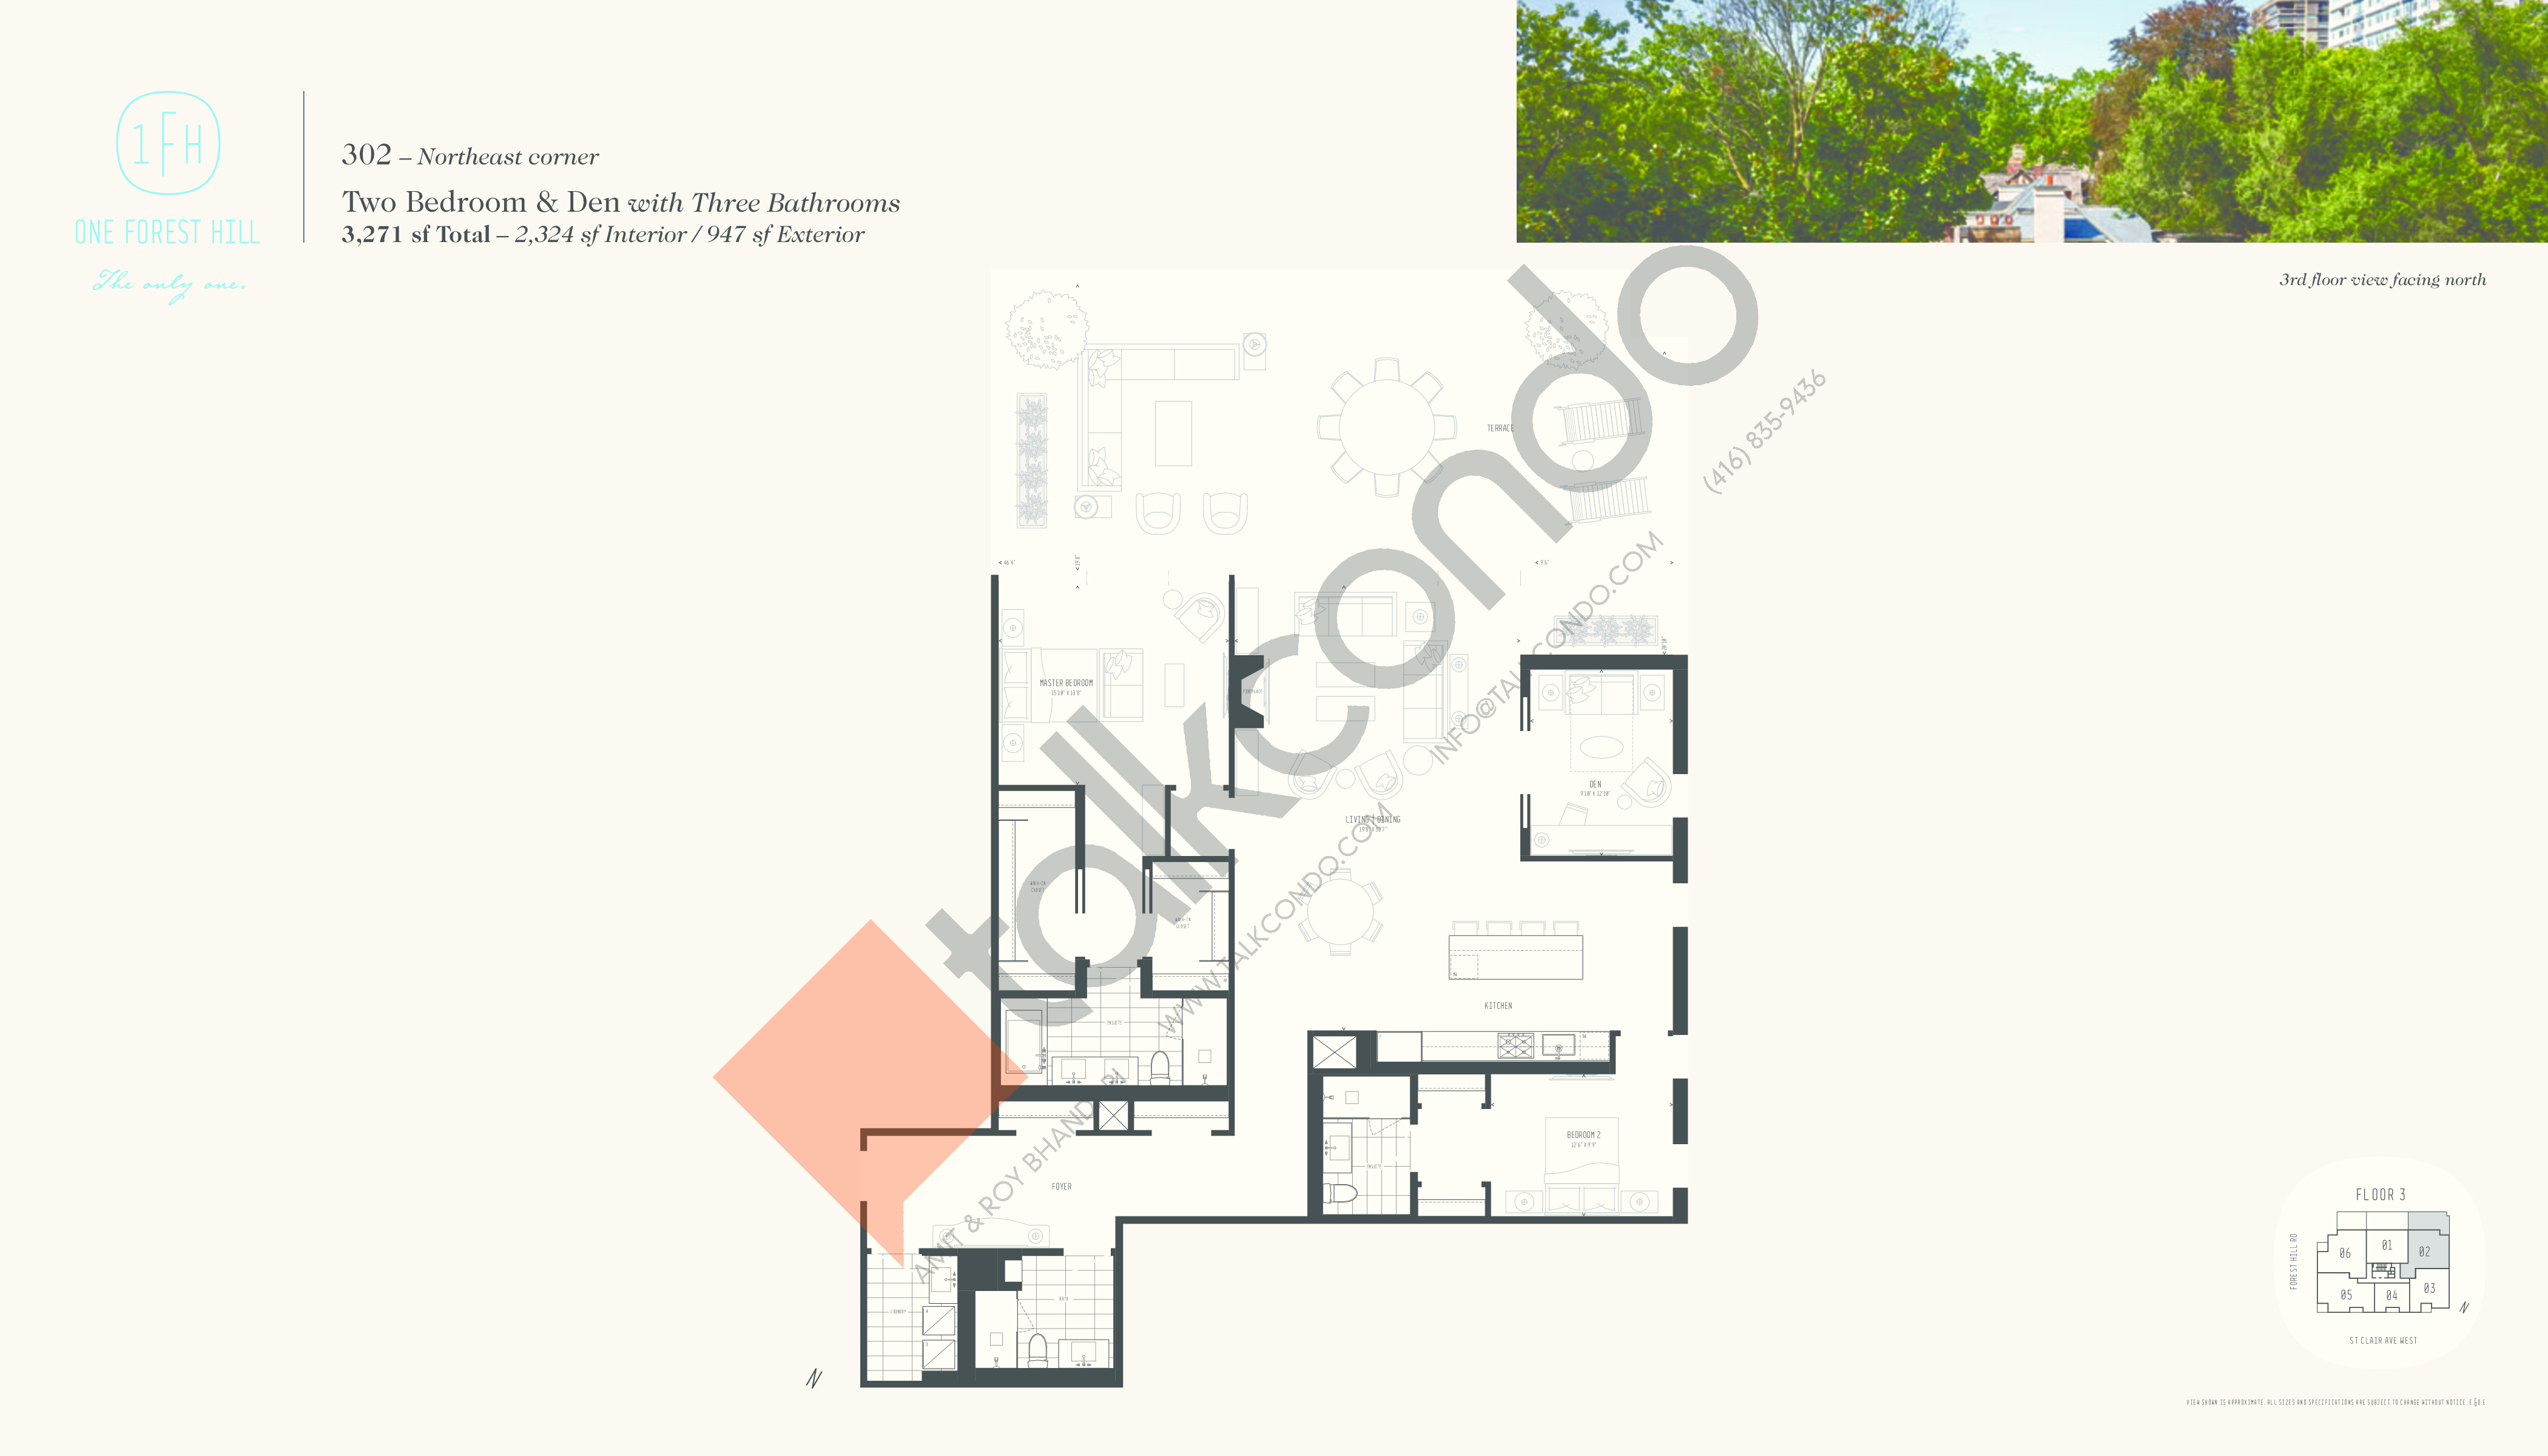 302 Floor Plan at One Forest Hill Condos - 2324 sq.ft